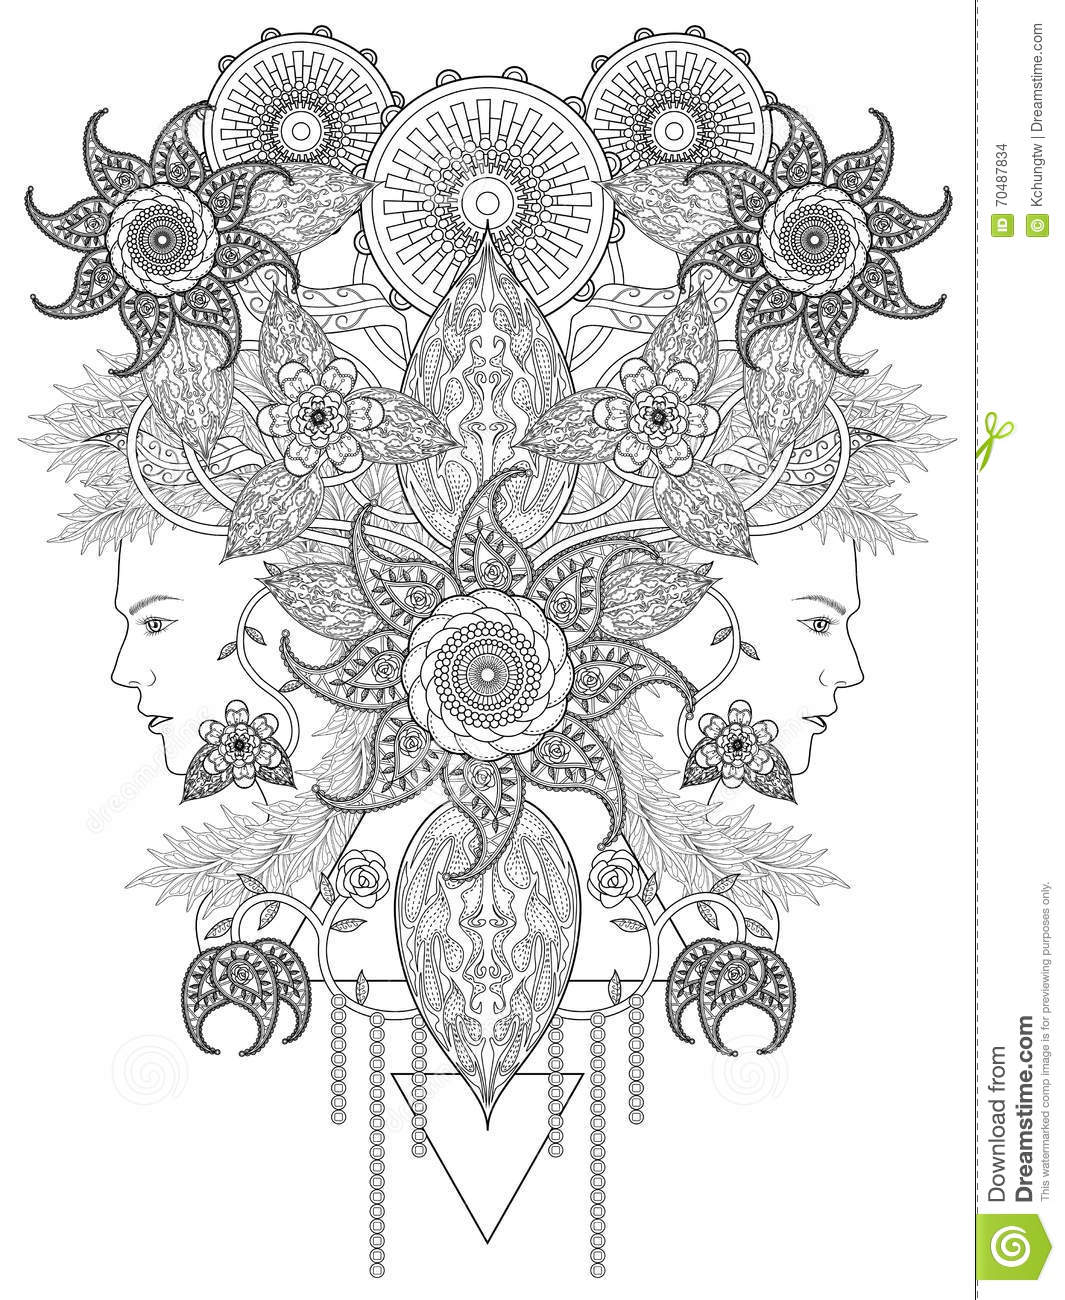 fashion coloring page stock illustration image 70487834